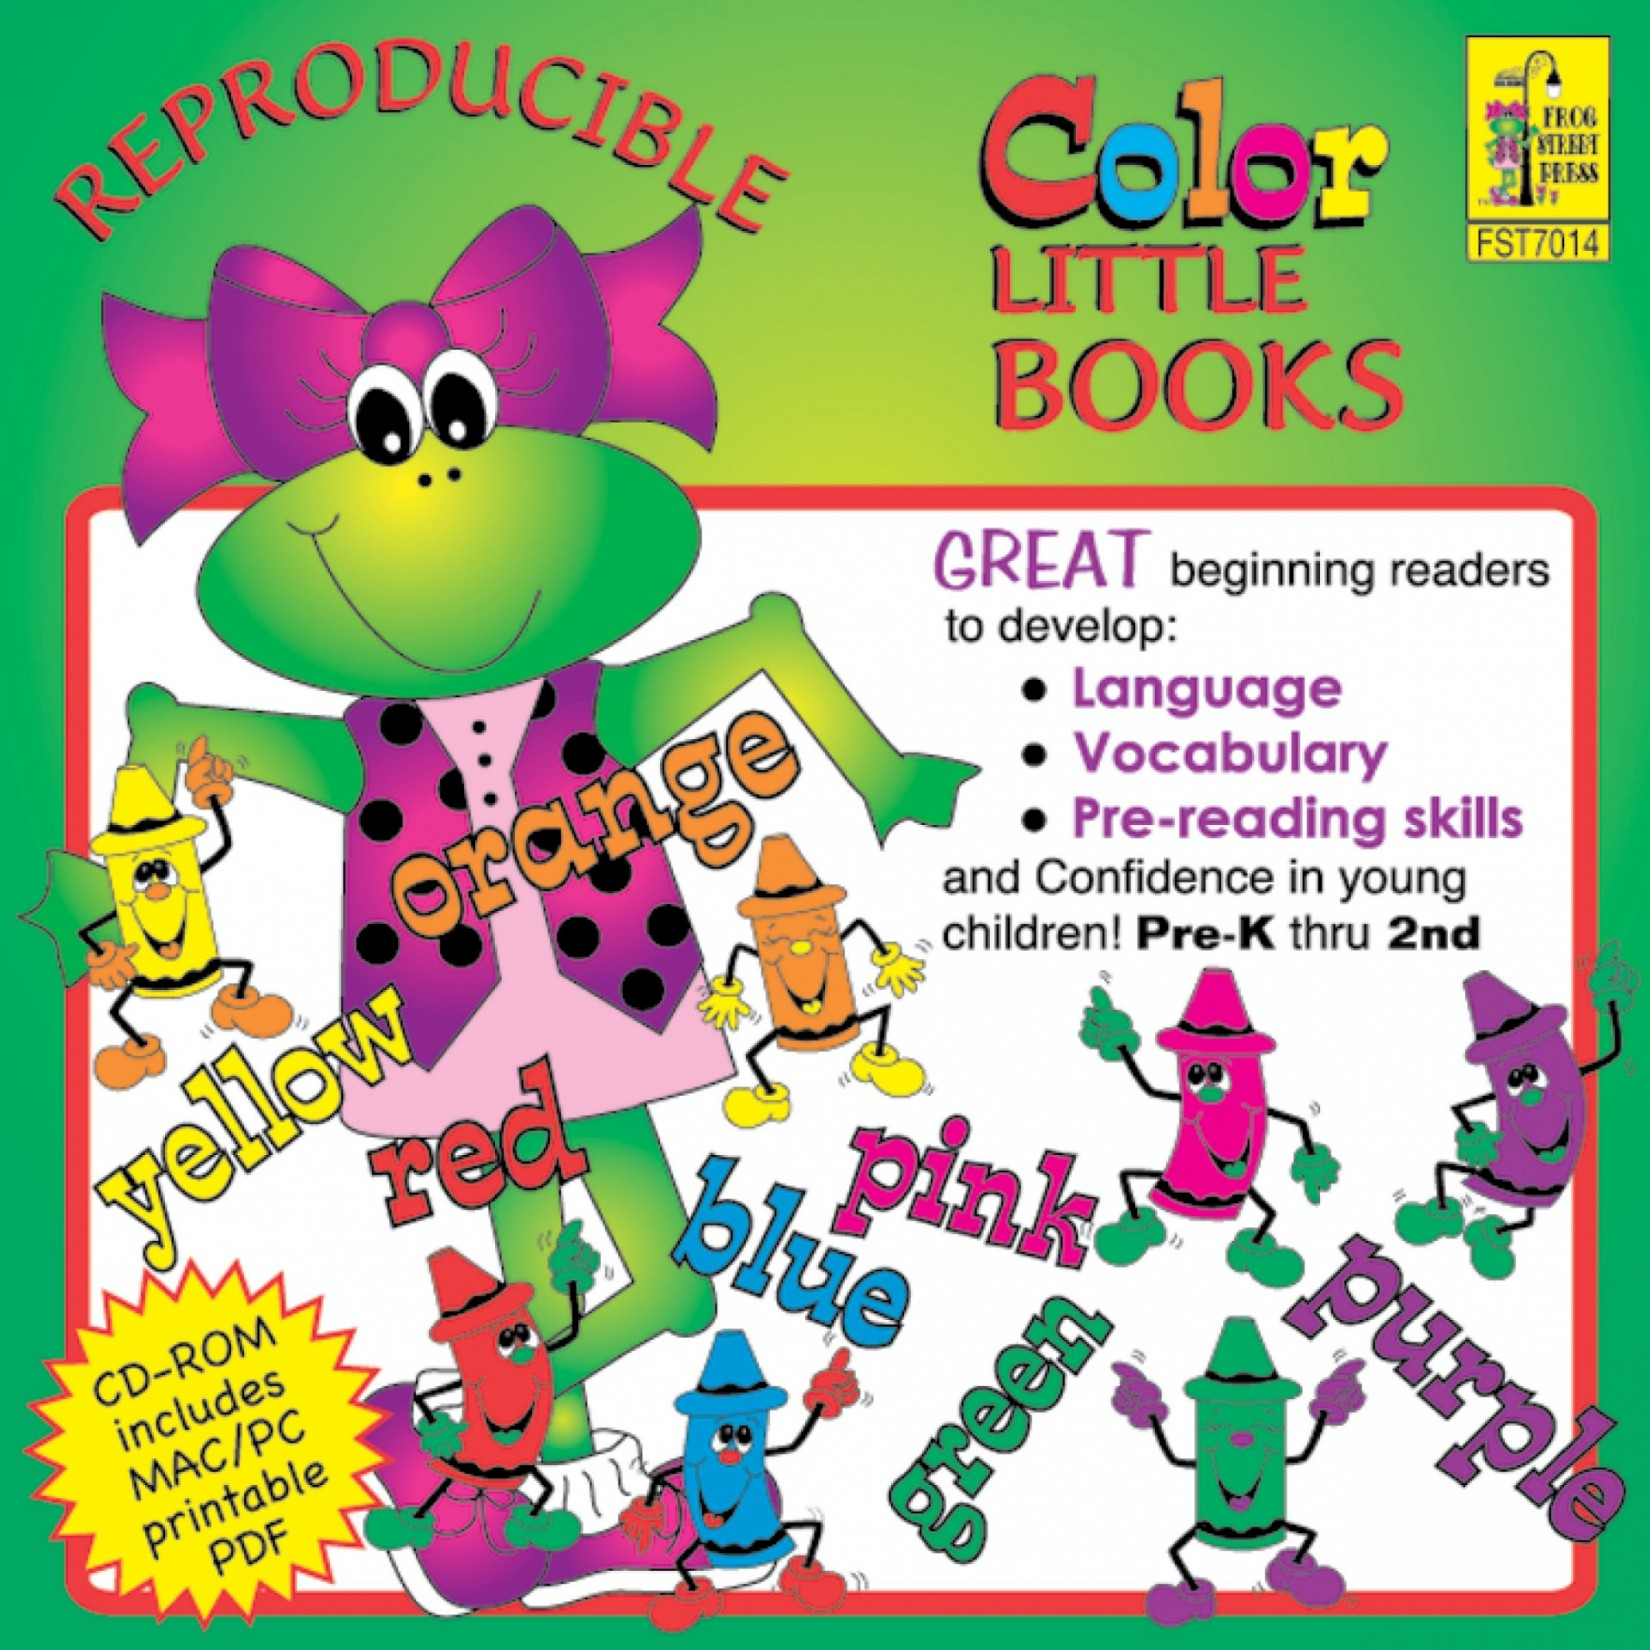 Nursery Rhymes Reproducible Little Books CD-ROM – Melody House Music